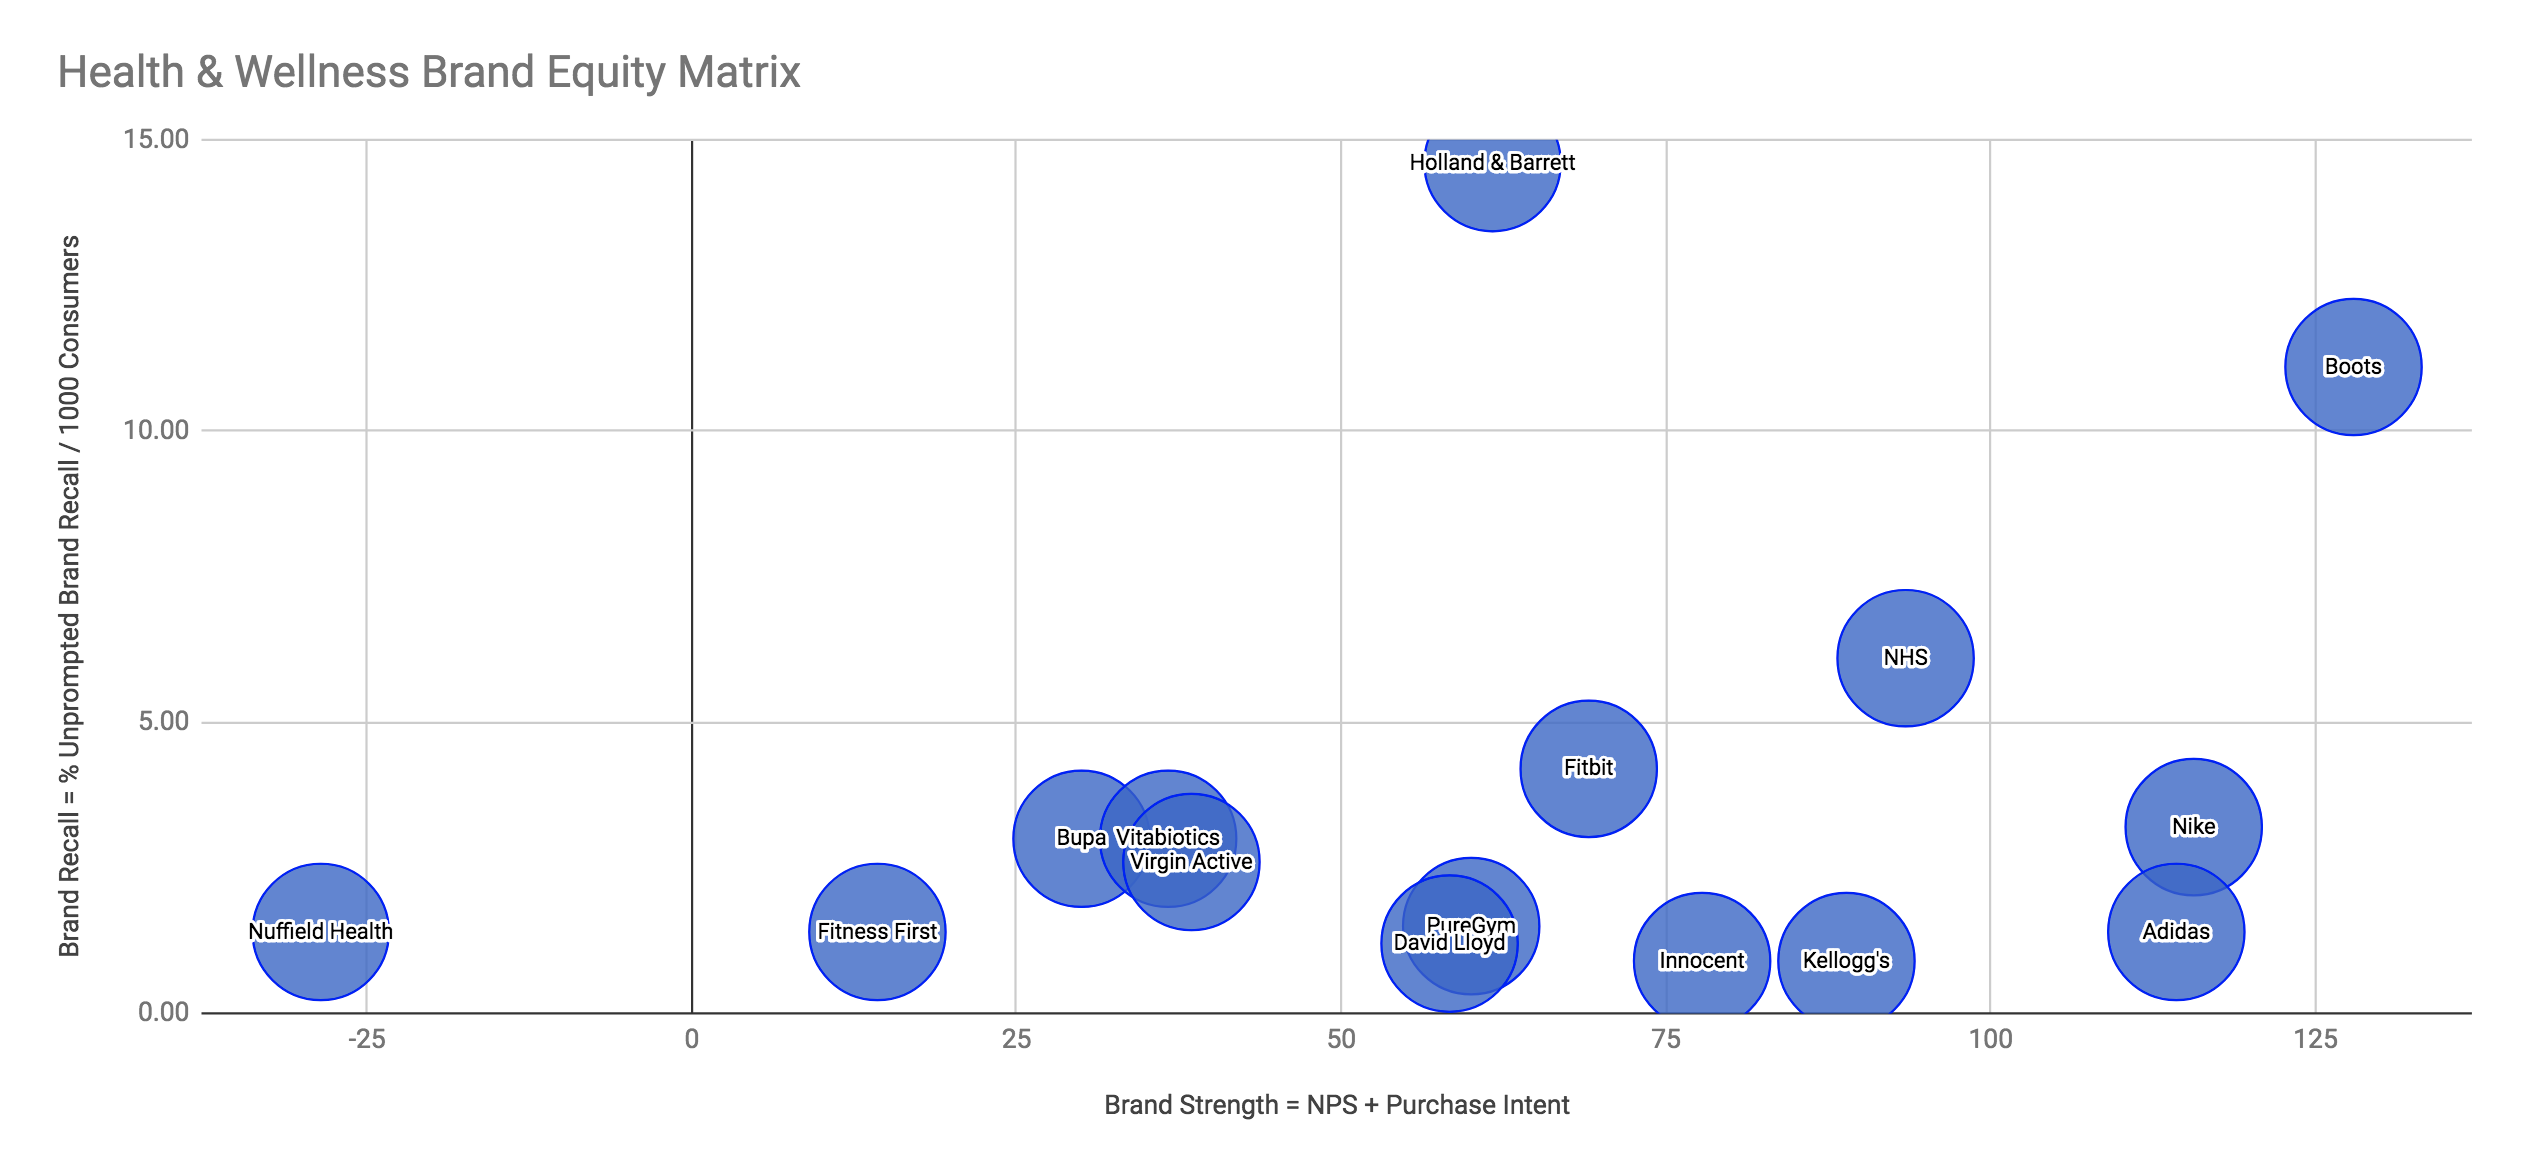 Health & Wellness Brand Equity Matrix